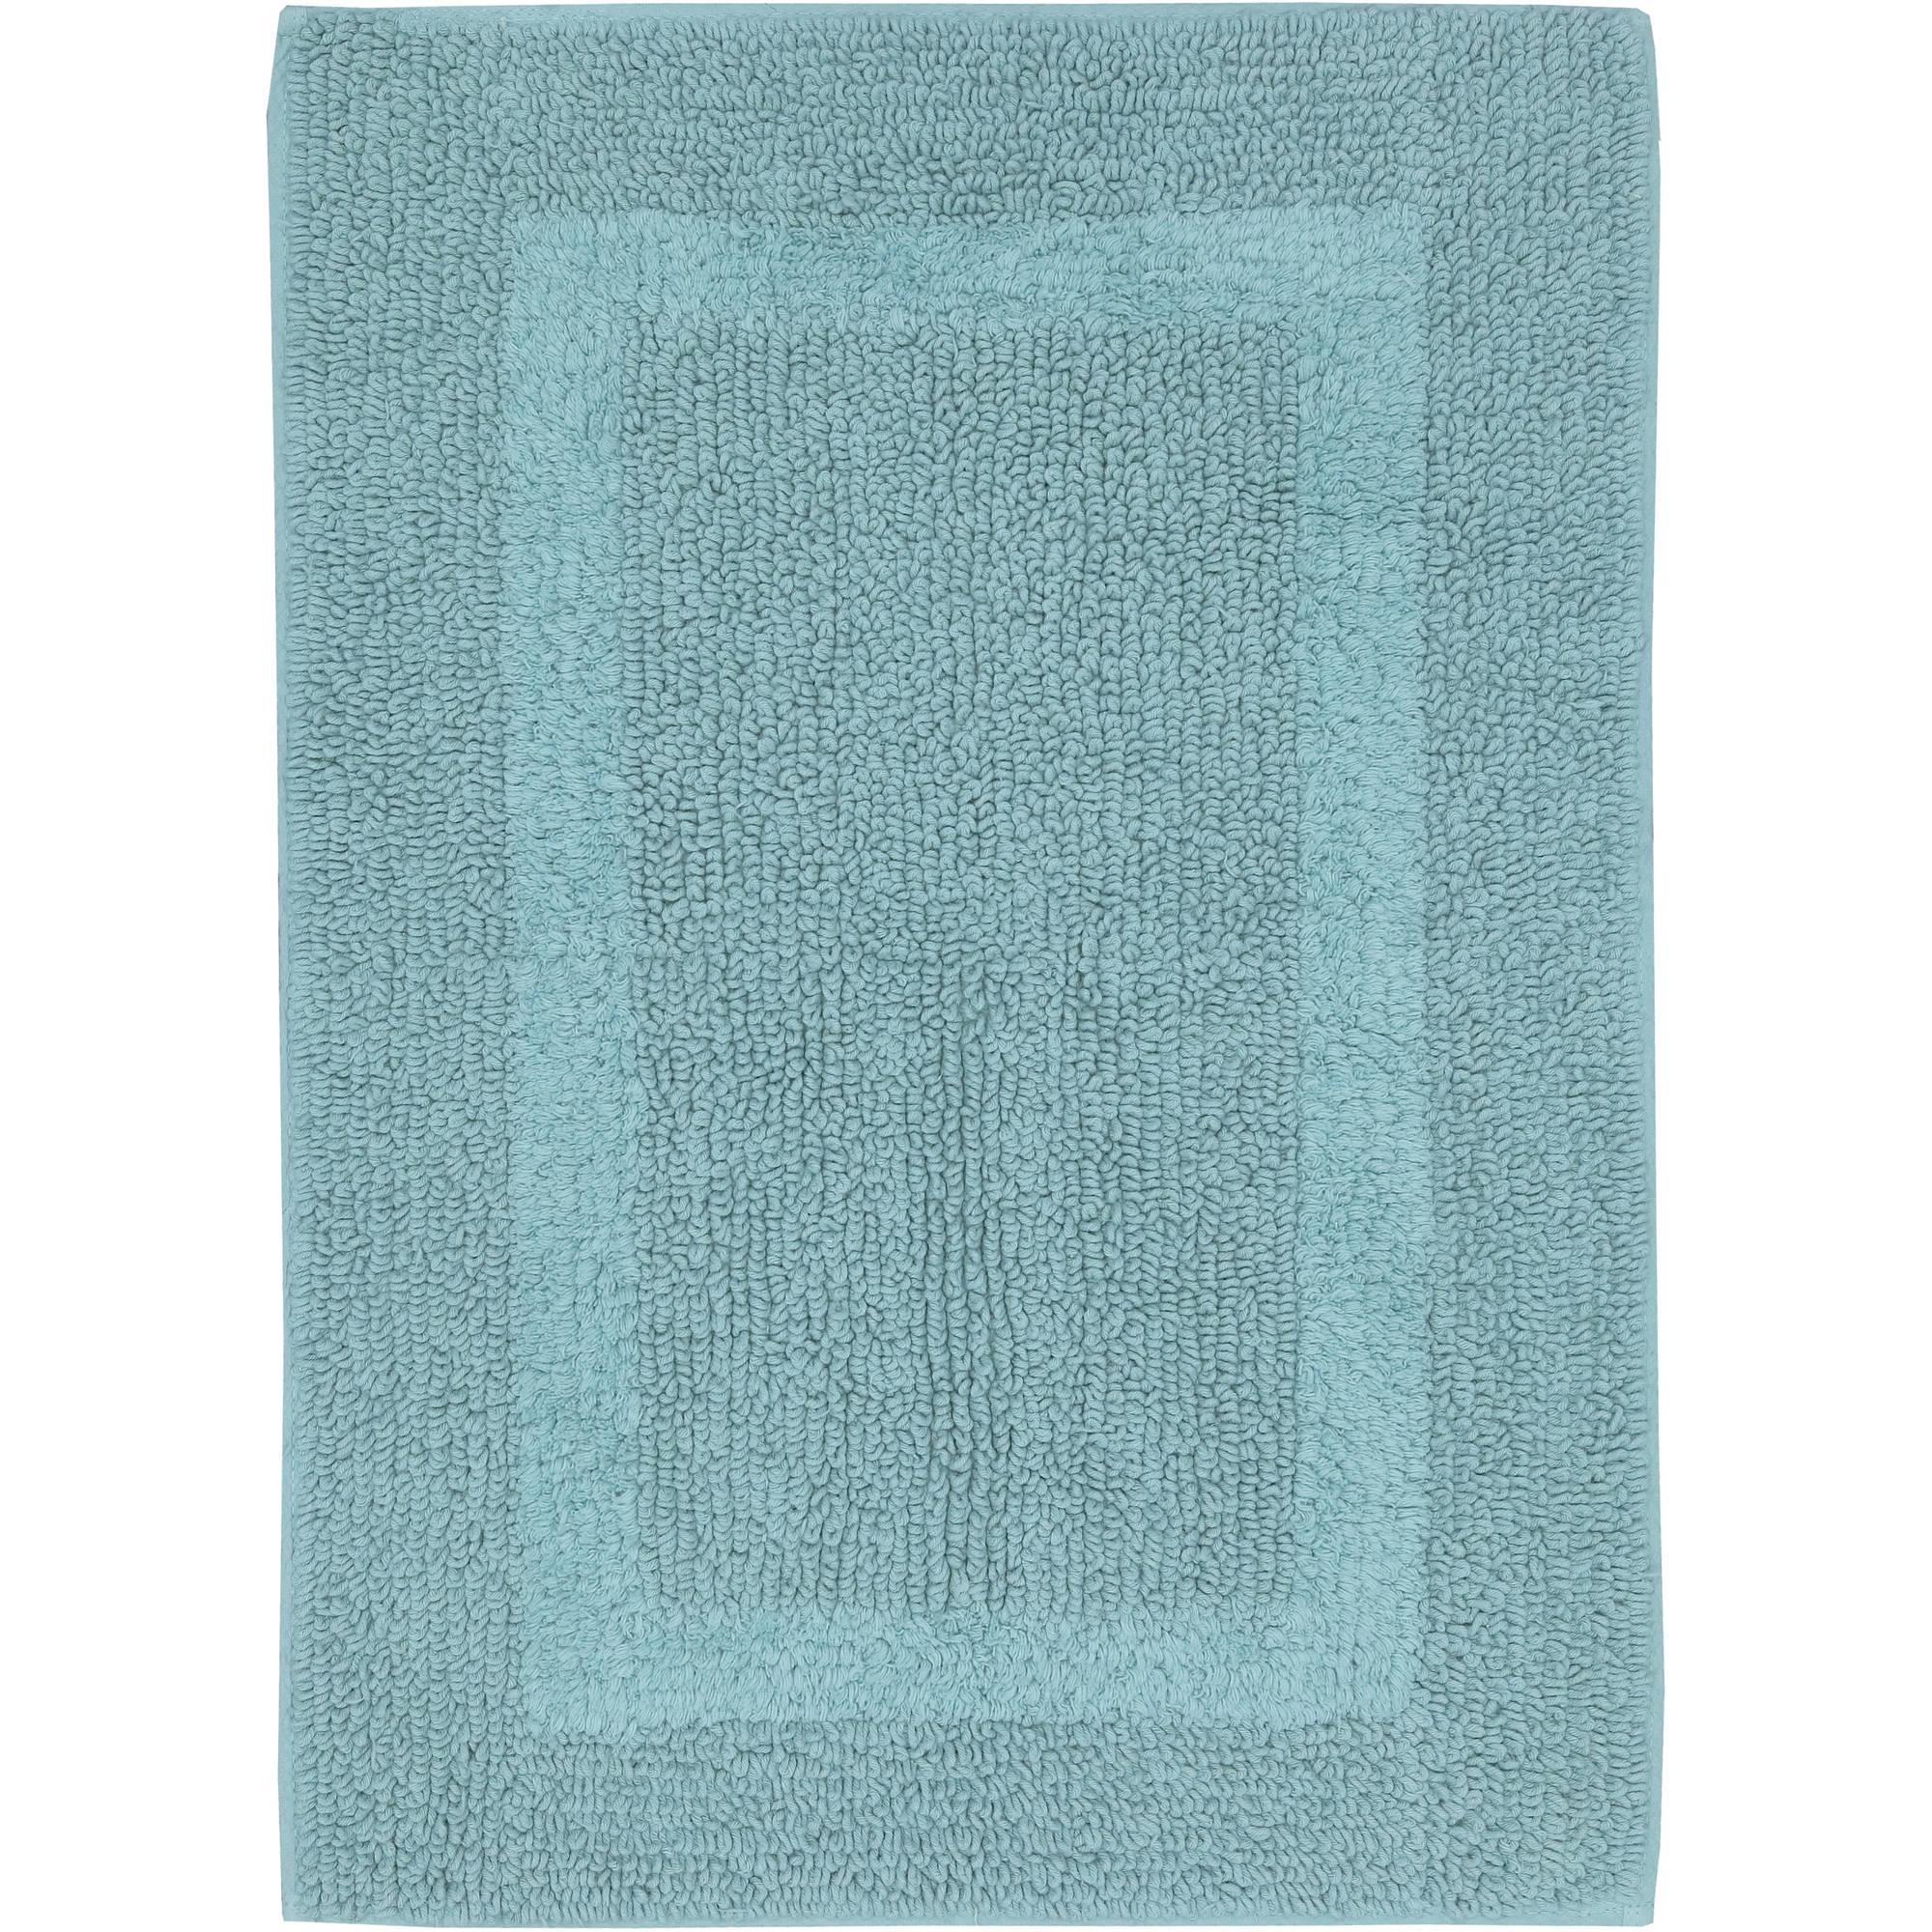 Permalink to Dark Turquoise Bathroom Rugs